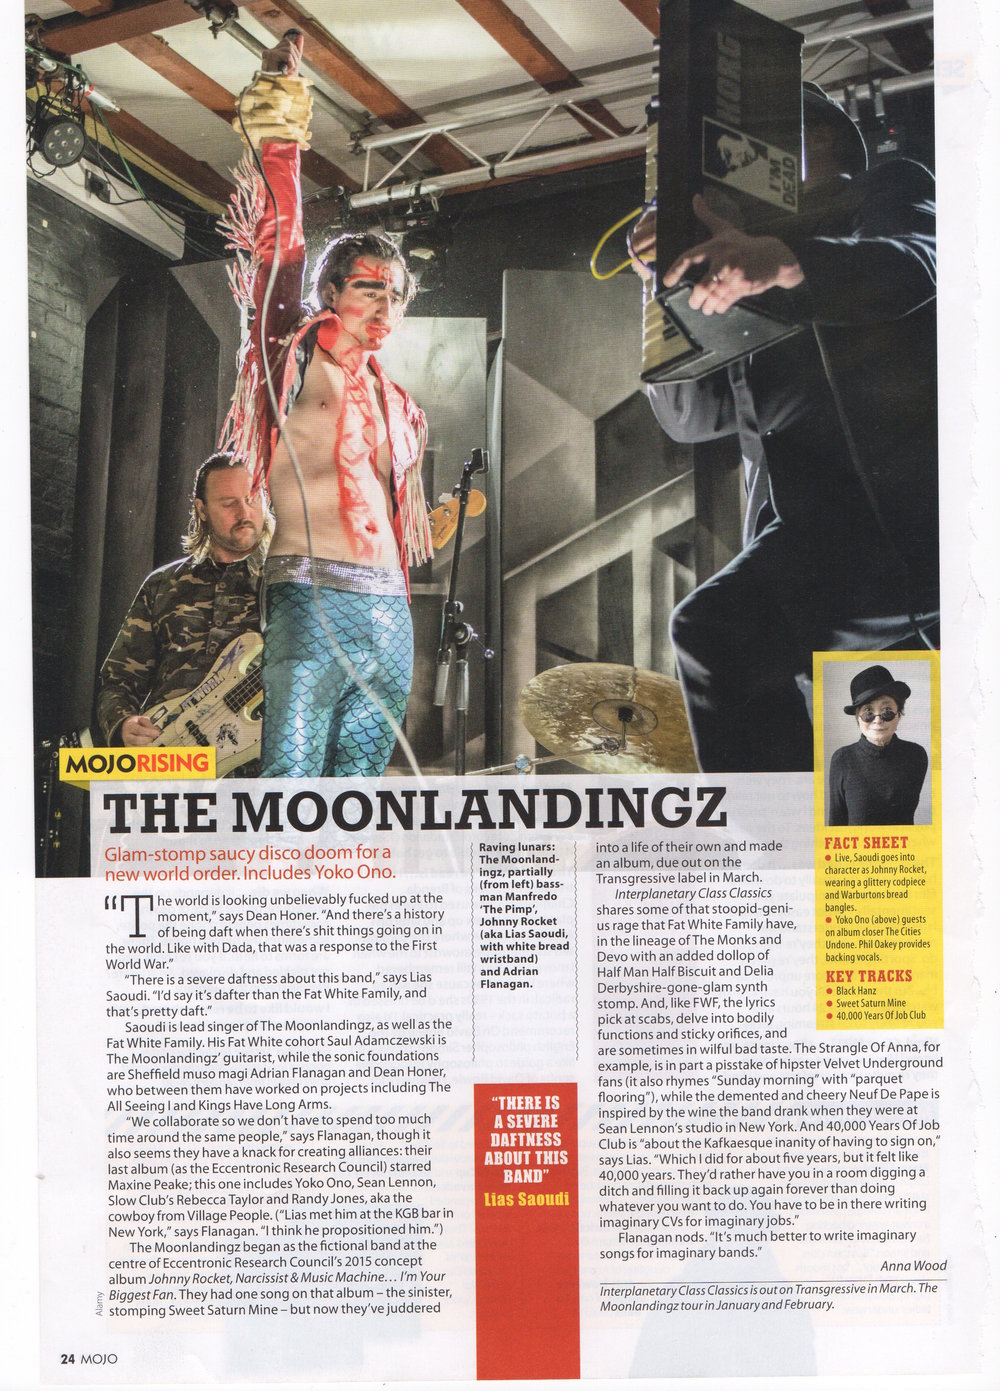 The Moonlandingz - MOJO Magazine - January 2017